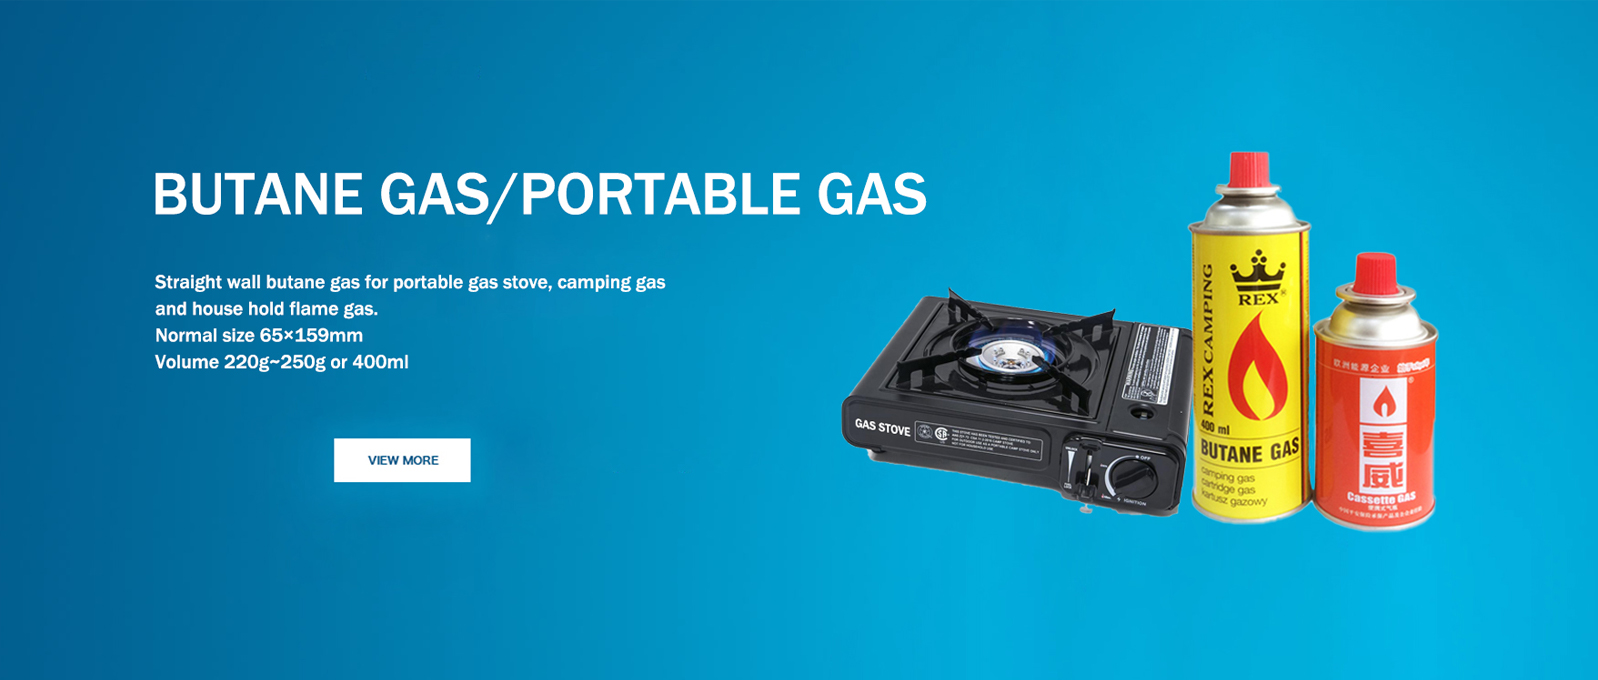 Butane gas for portable gas stove